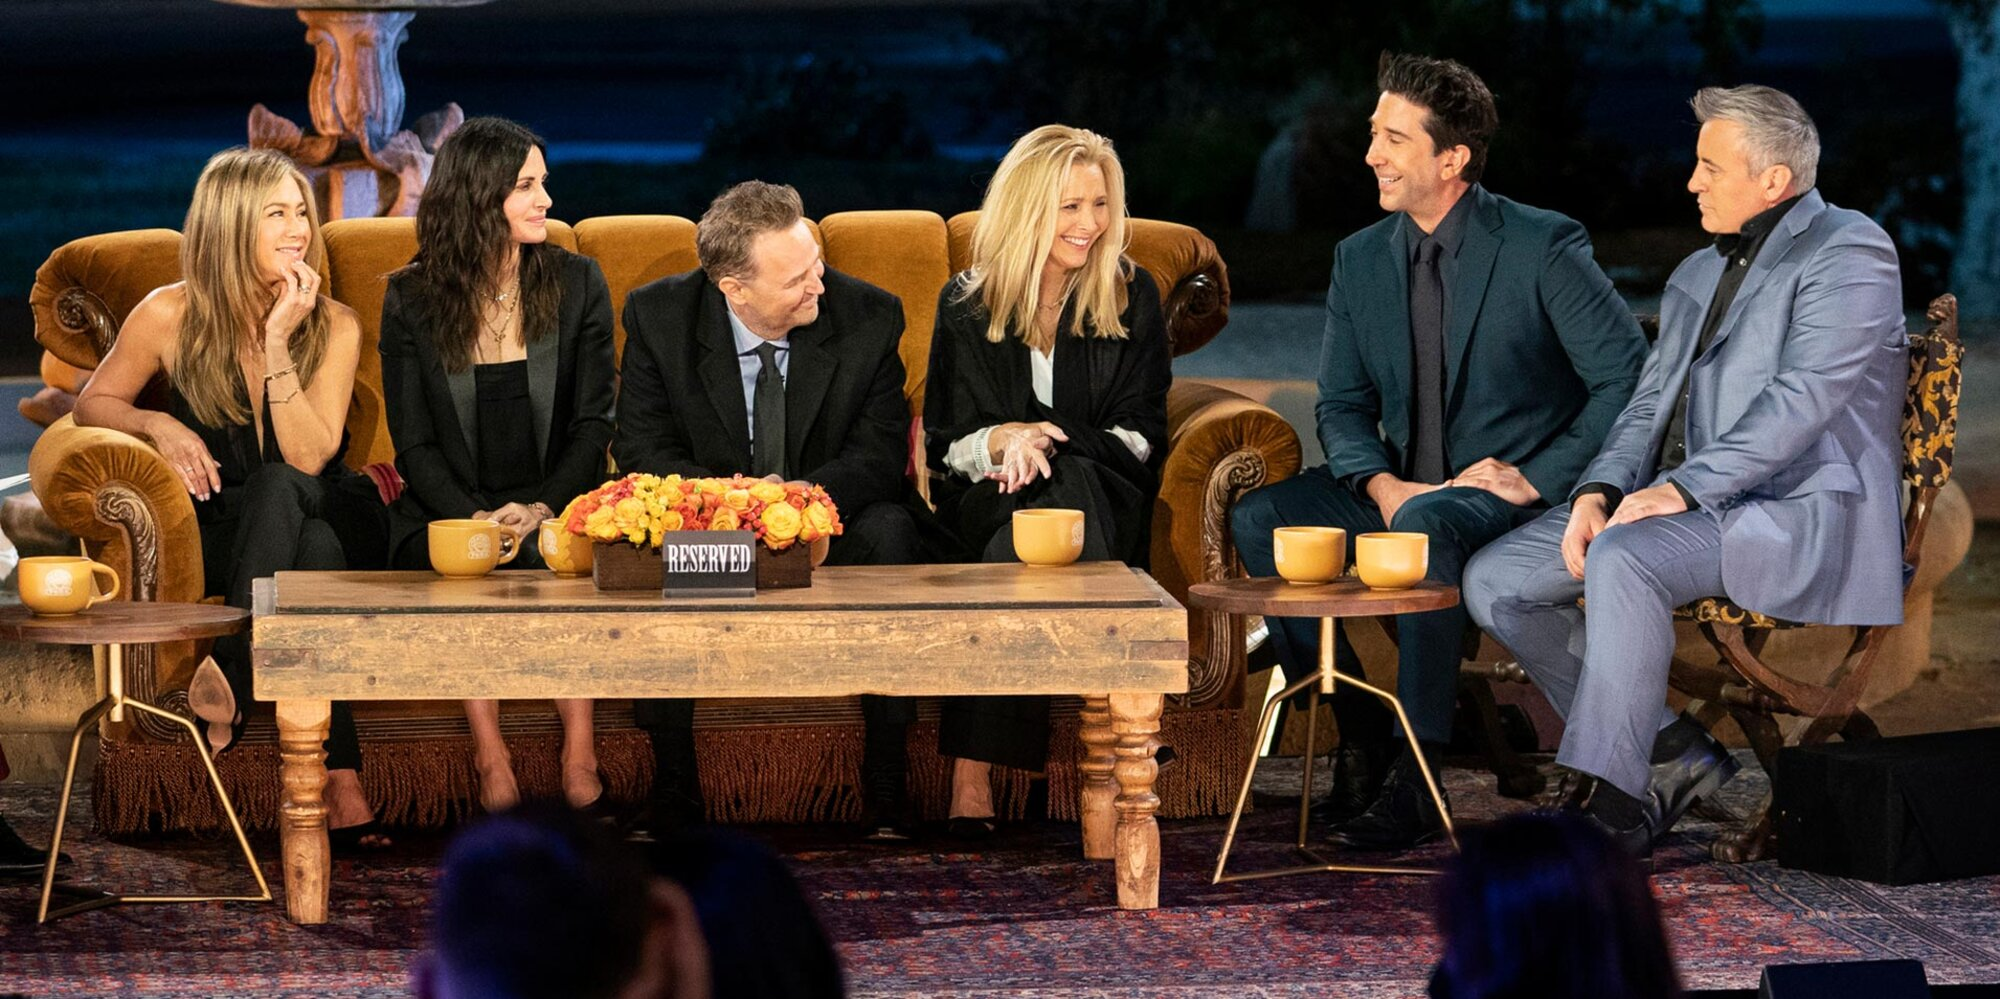 The 'Friends' reunion is the transponster of reunions